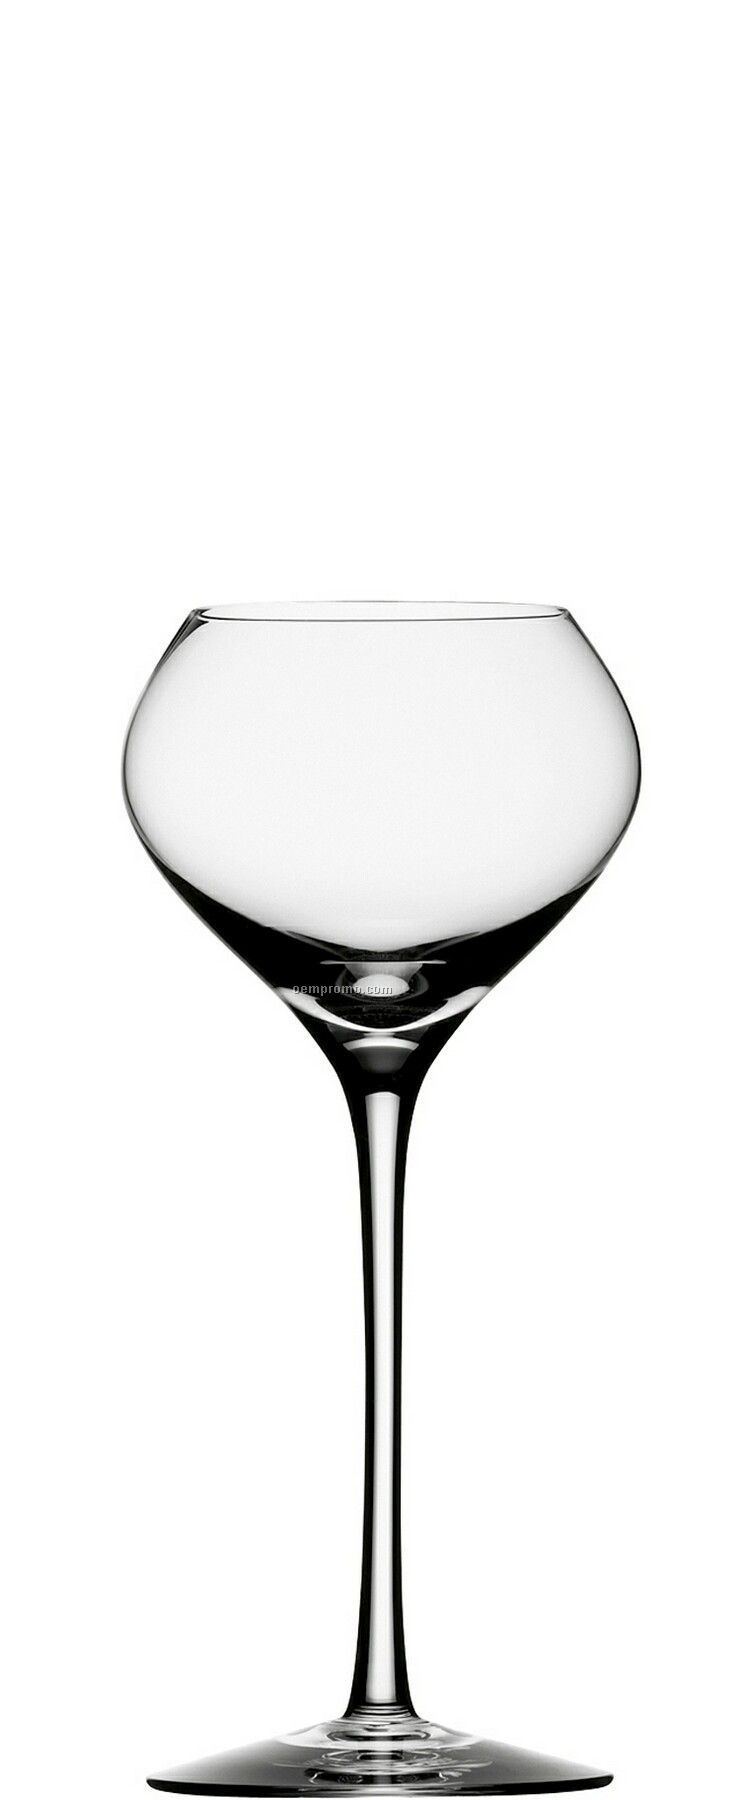 "Difference ""Sweet"" Crystal Wine Glass W/ Flavor Enhance Design"